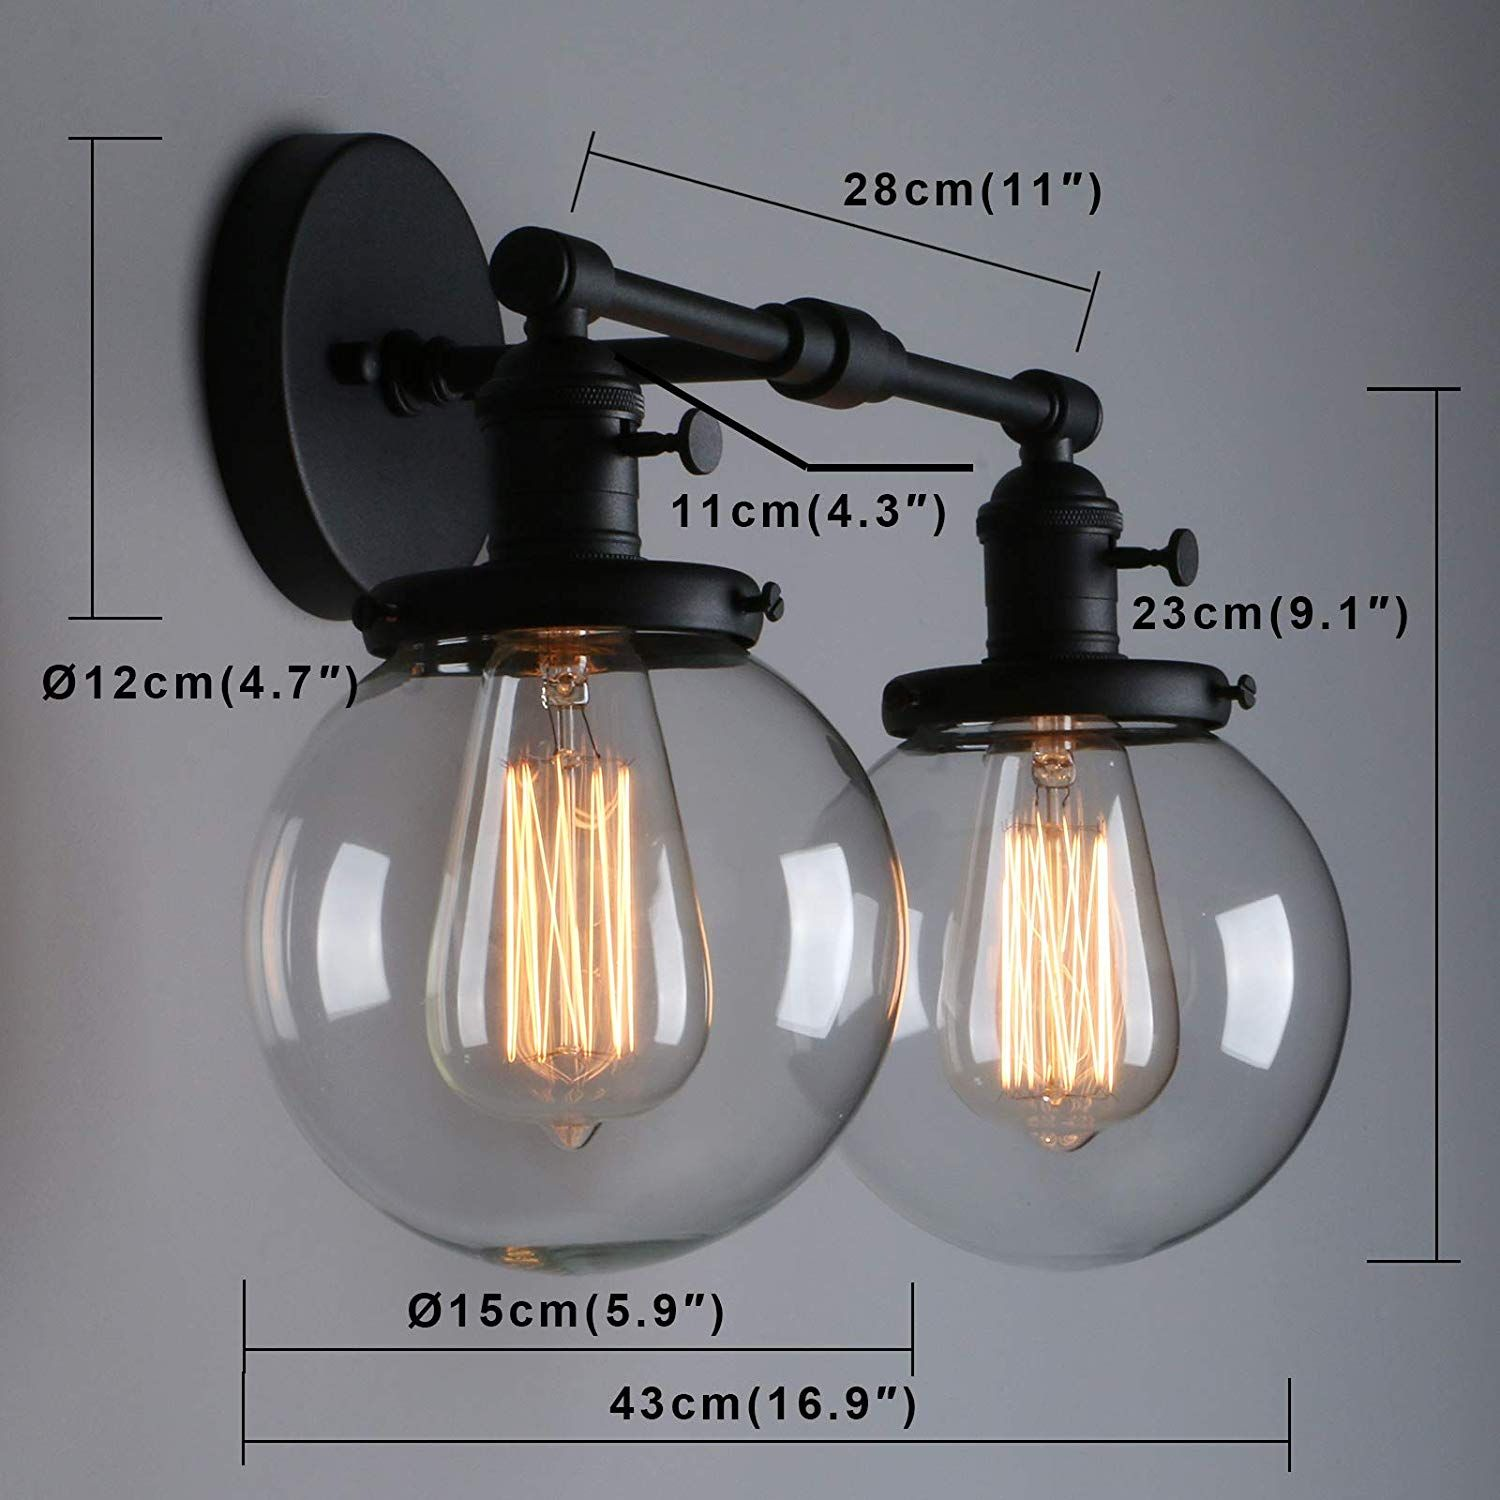 Phansthy Vintage Wall Light Fixtures With Globe Glass Shade 2 Lights Wall Sconces Lighting Switched Indoor Ru Wall Light Fixtures Wall Sconce Lighting